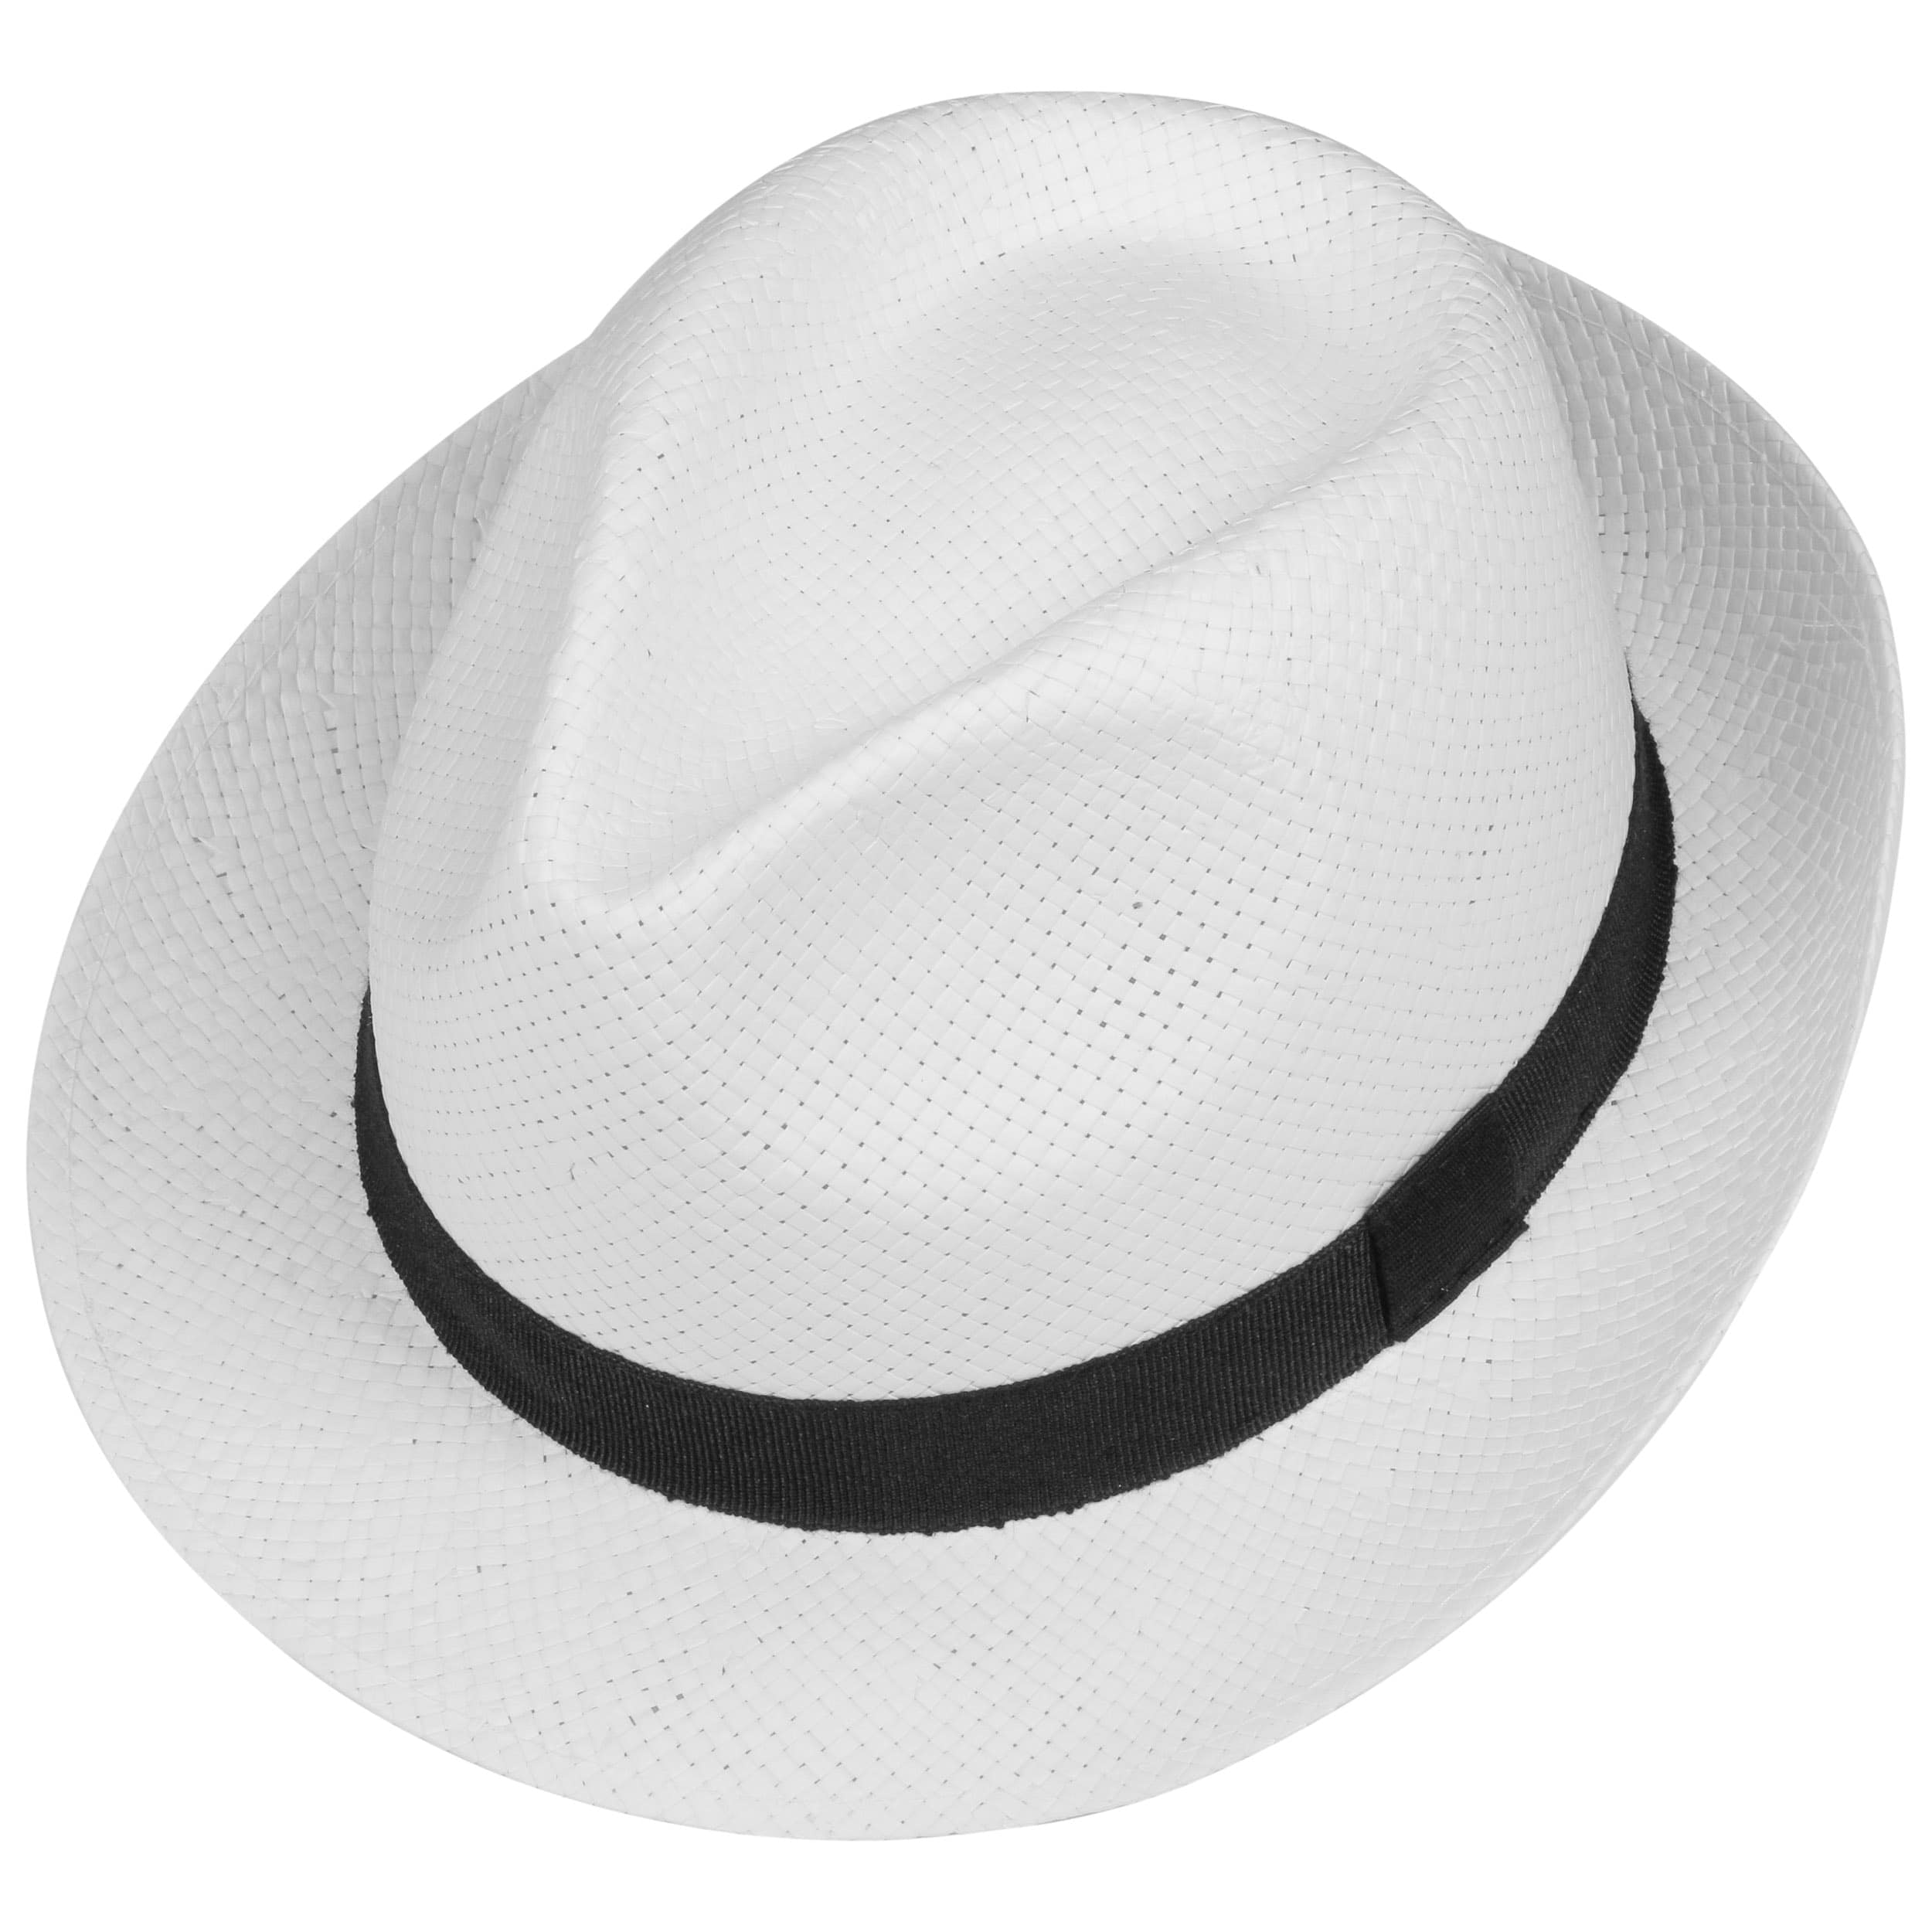 46f41315a185fe White City Trilby Hat by Lipodo - white 1 ...